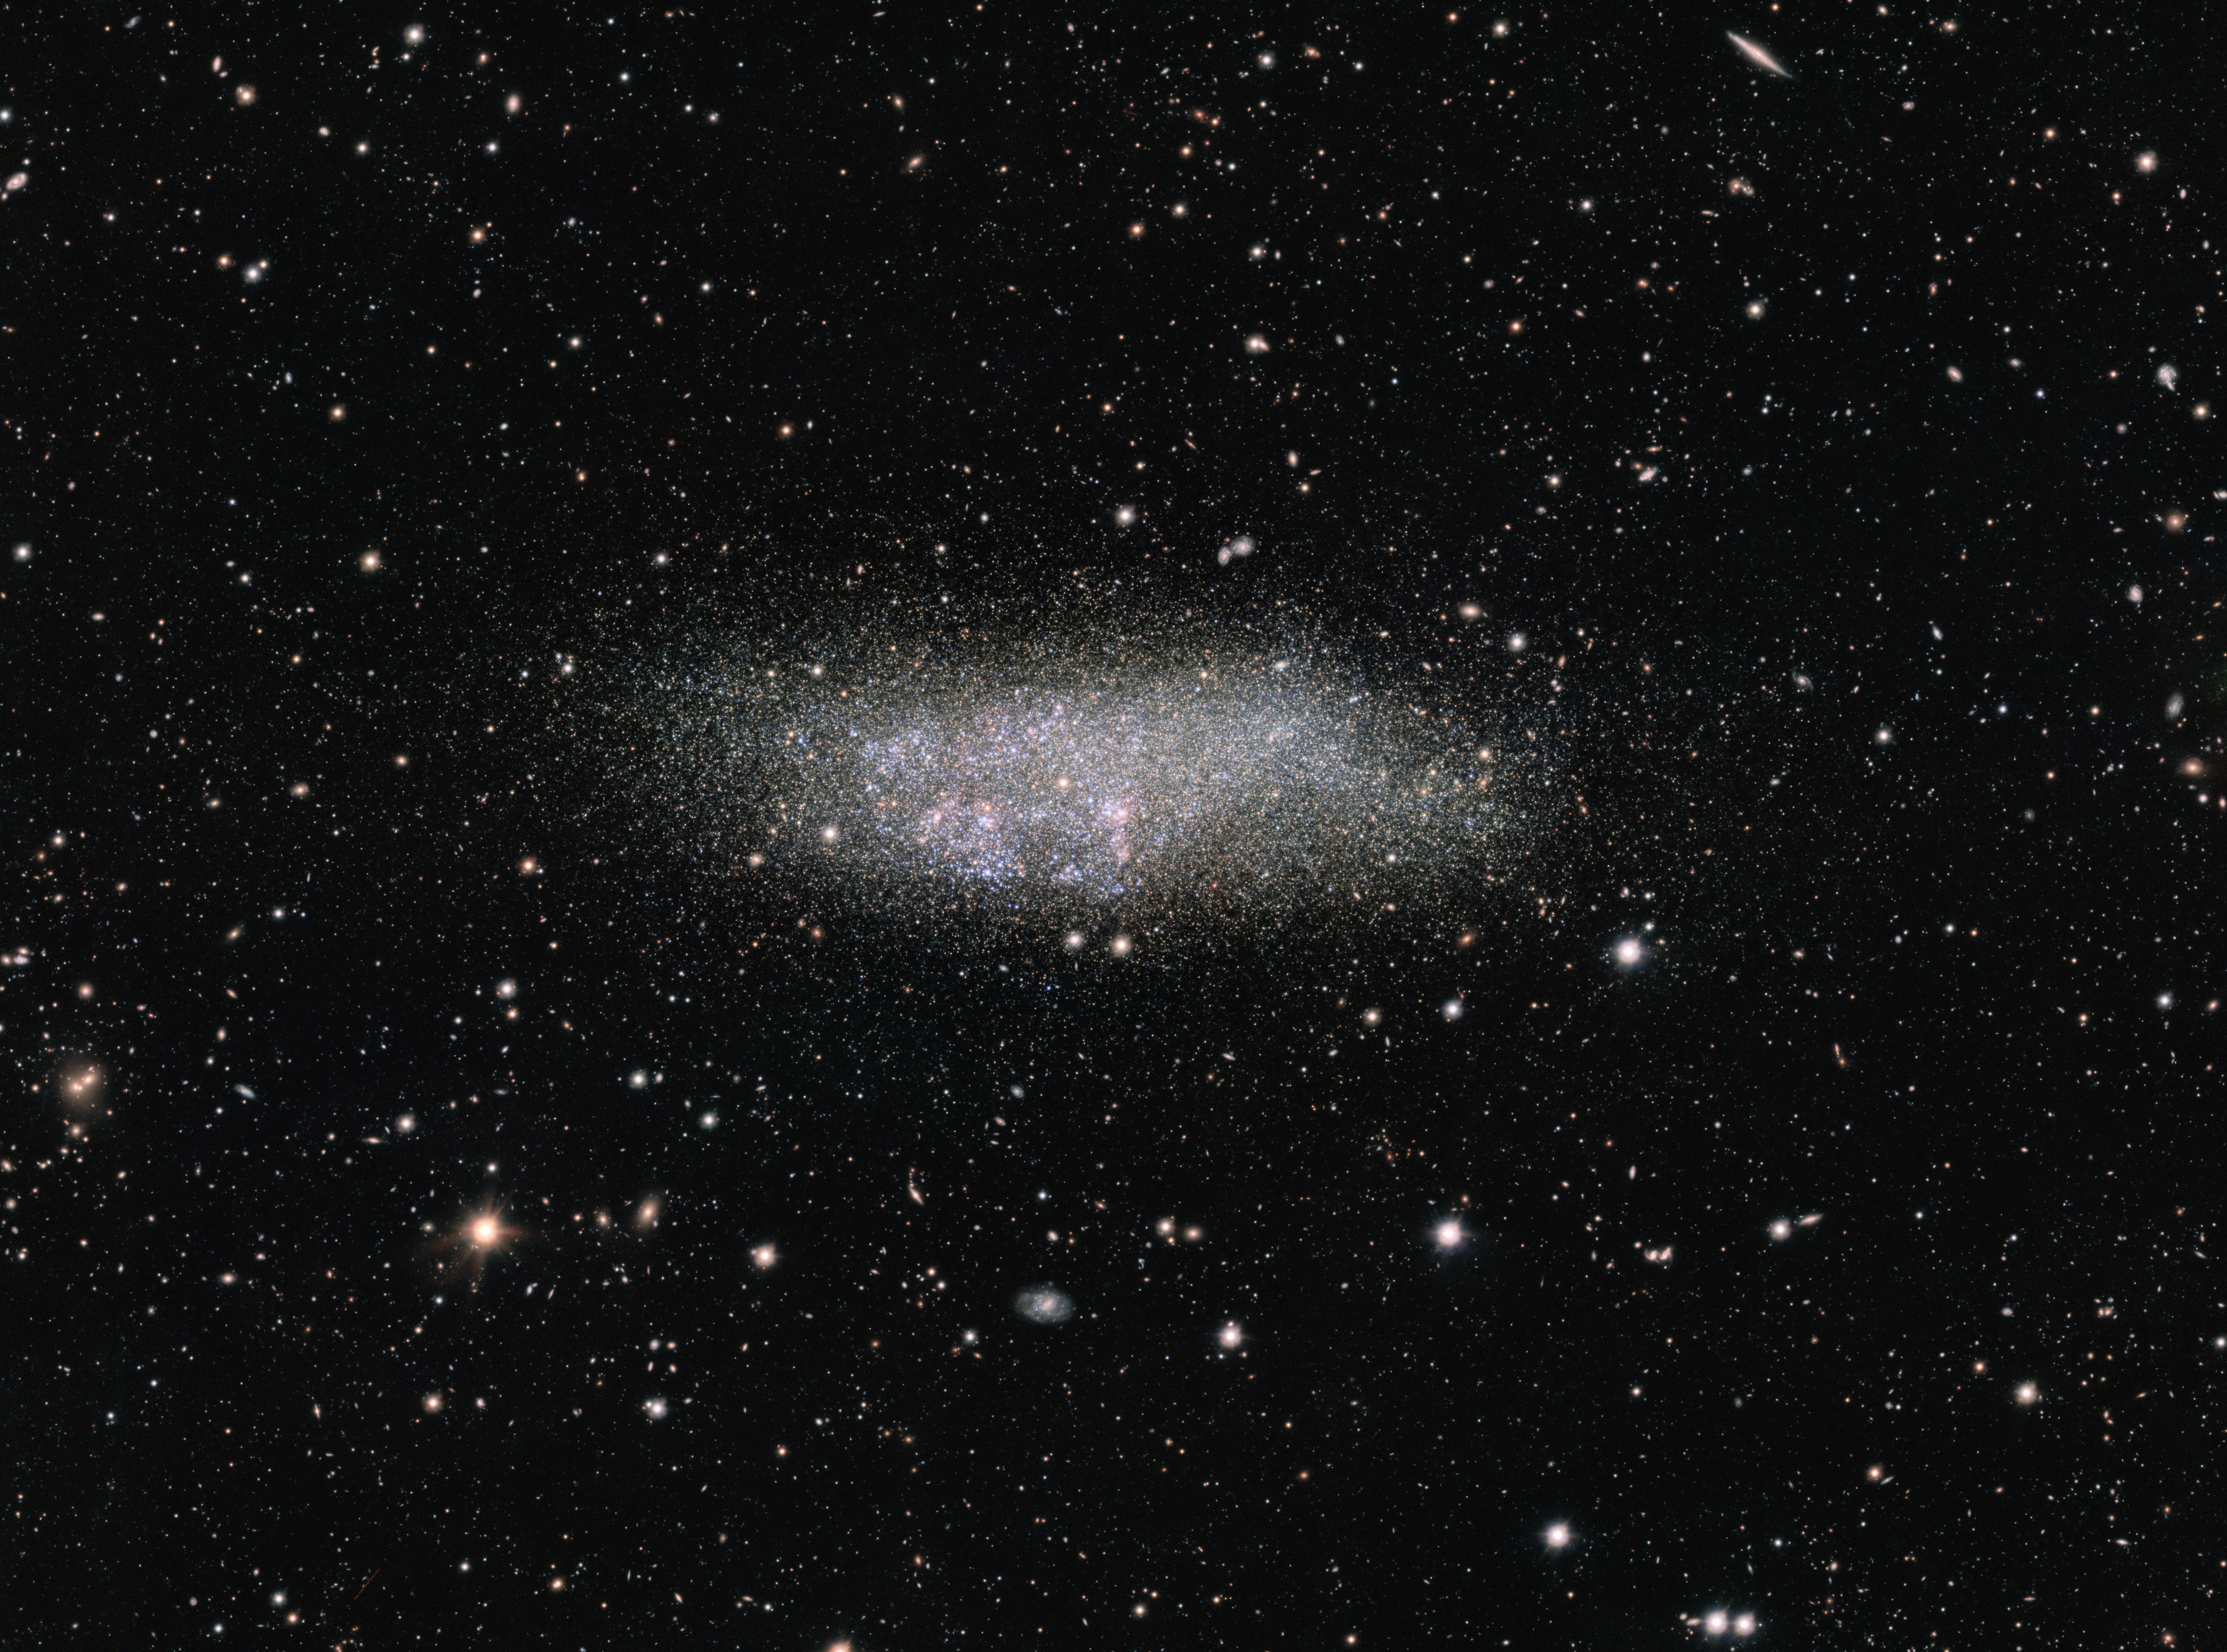 This image, captured by ESO's OmegaCAM on the VLT Survey Telescope, shows a lonely galaxy known as Wolf-Lundmark-Melotte, or WLM for short. Although considered part of our Local Group of dozens of galaxies, WLM stands alone at the group's outer edges as one of its most remote members. In fact, the galaxy is so small and secluded that it may never have interacted with any other Local Group galaxy — or perhaps even any other galaxy in the history of the Universe.